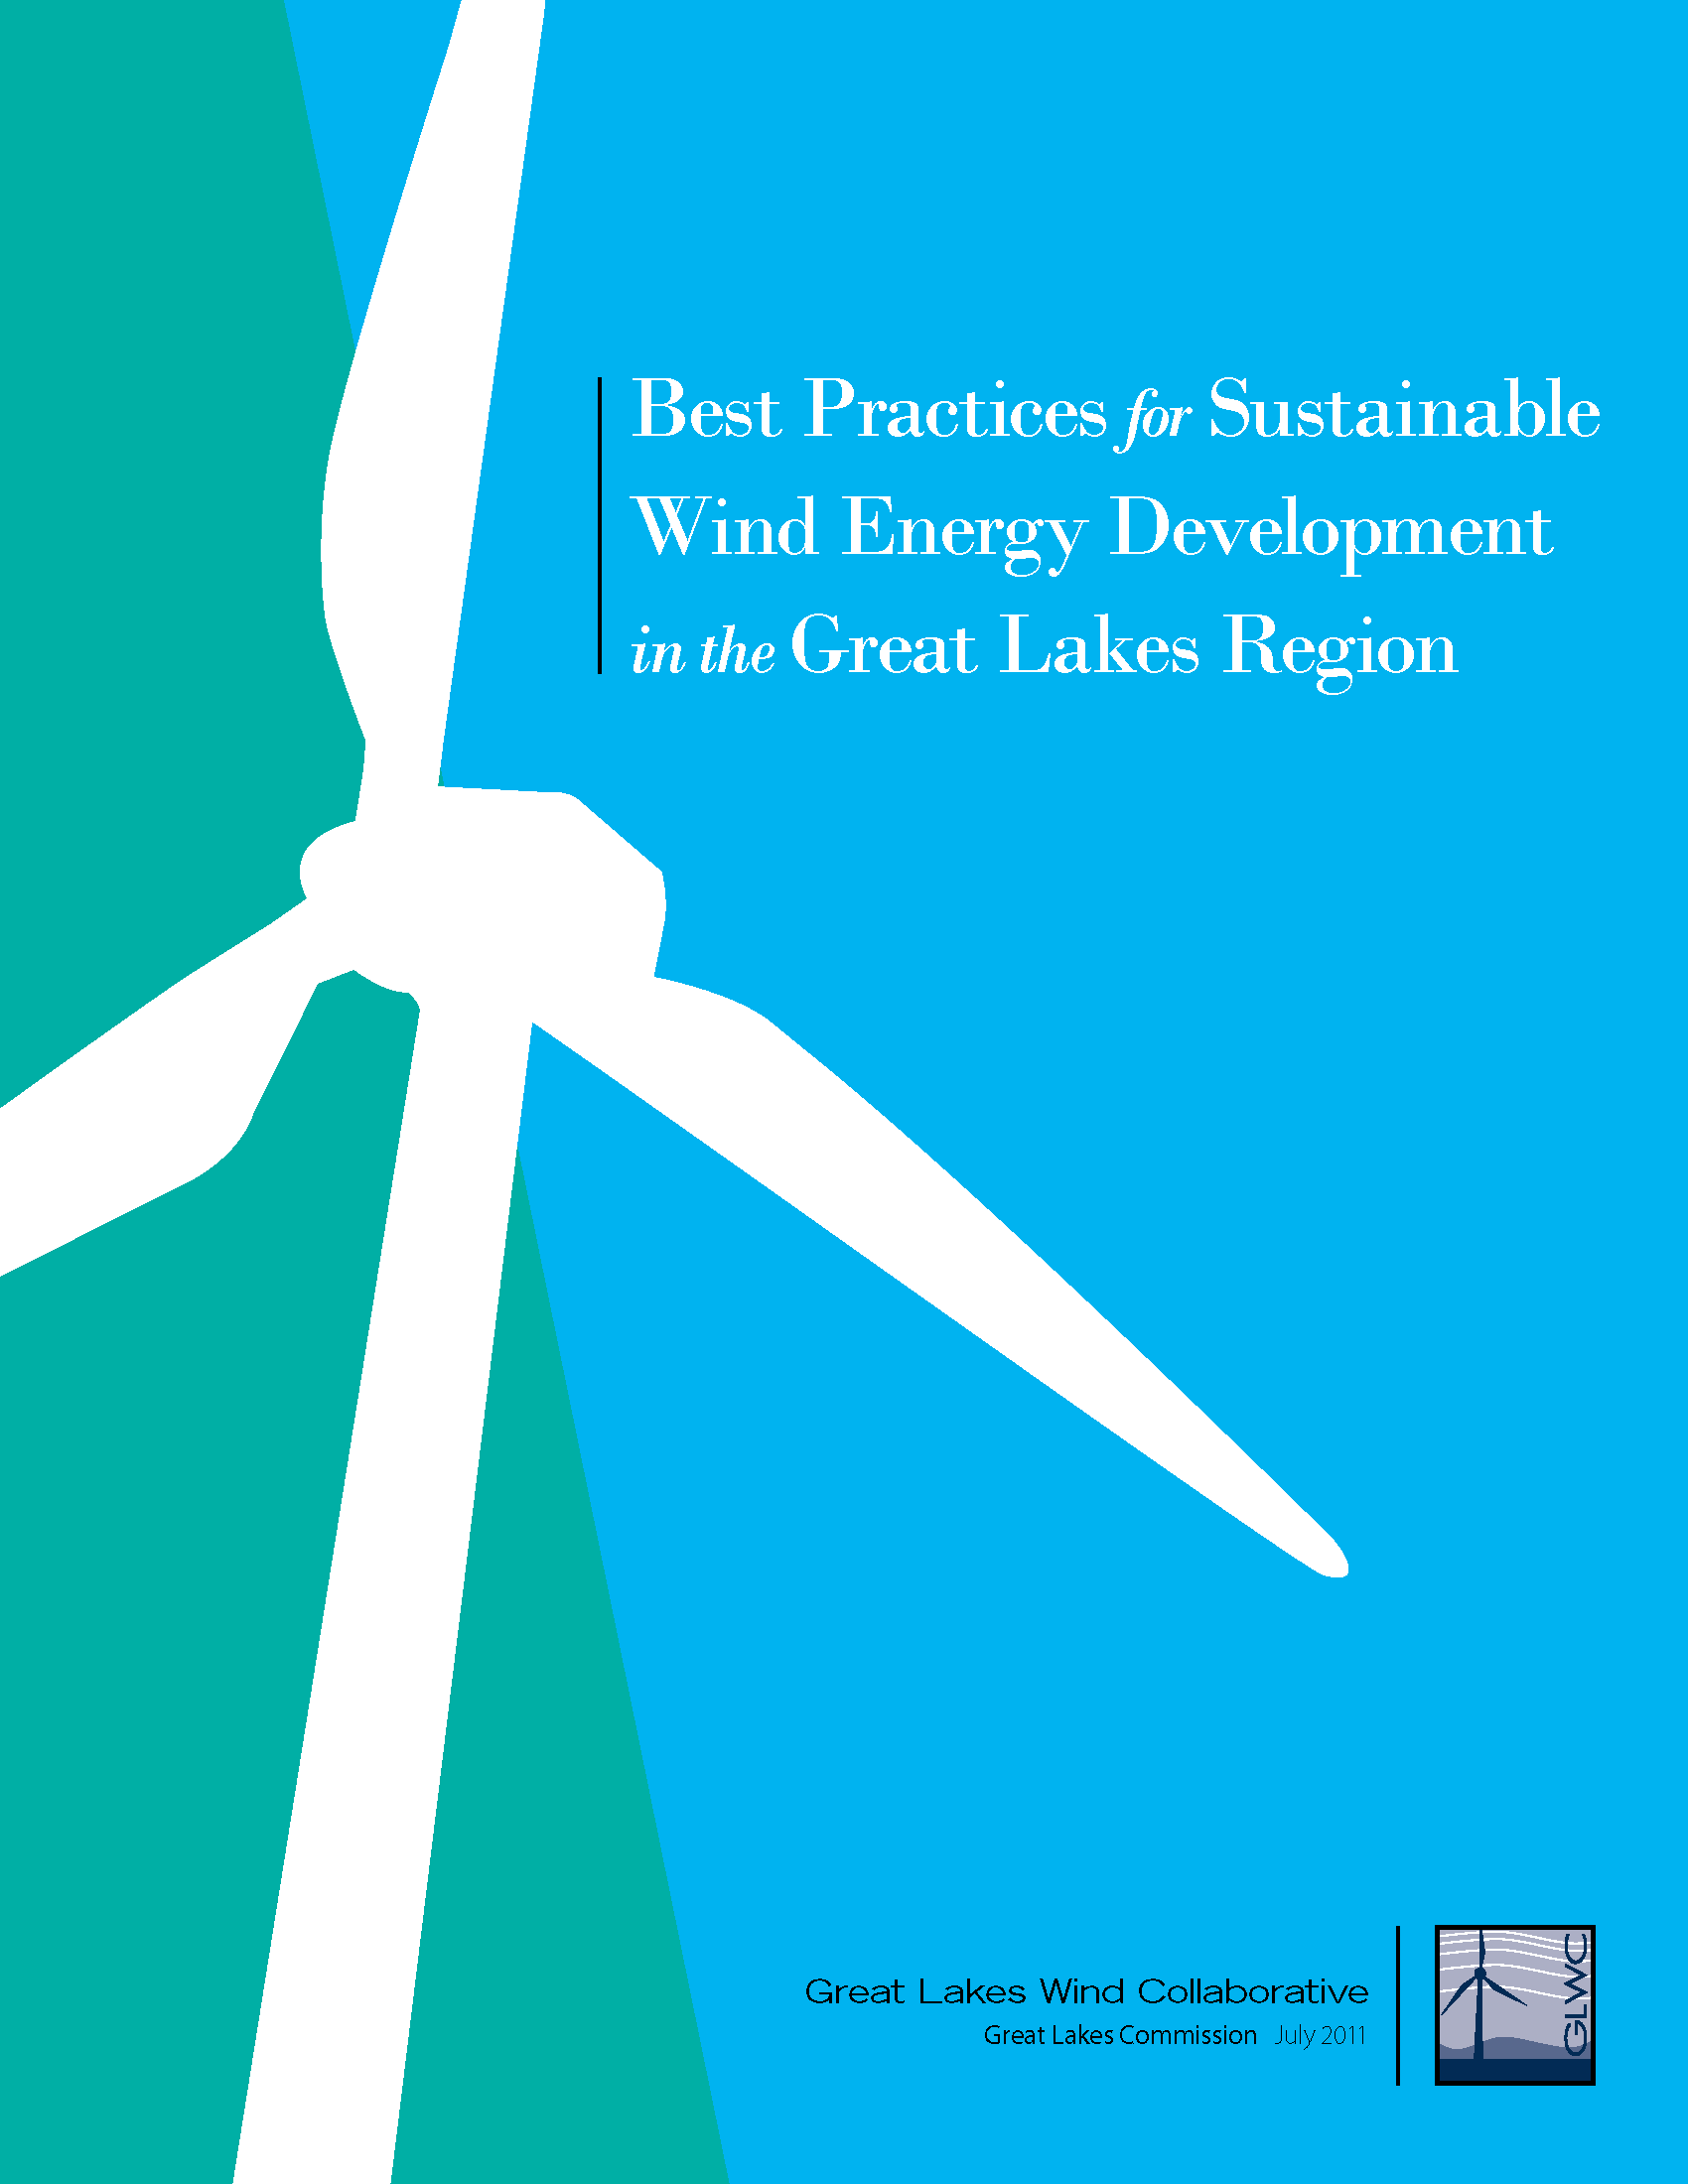 Great Lakes Wind Collaborative Best Practices for Sustainable Wind Energy Development.png